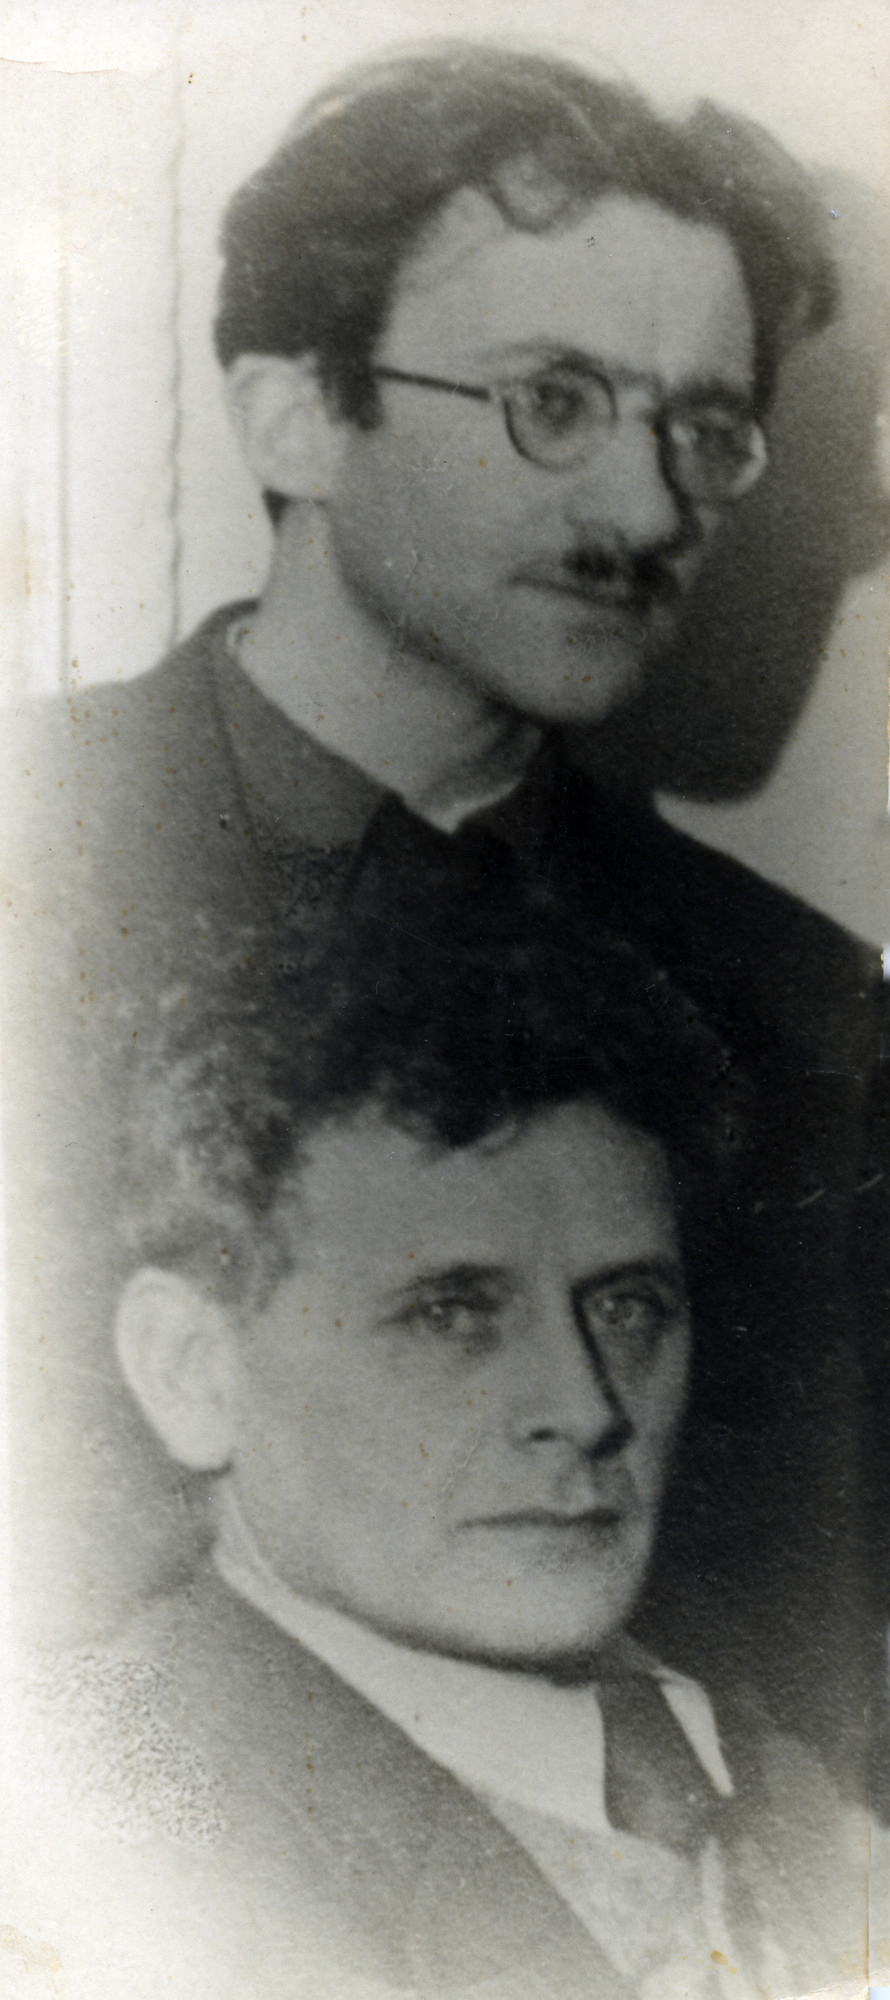 Avraham Sutzkever with Russian Jewish poet and playwright Peretz Markish.